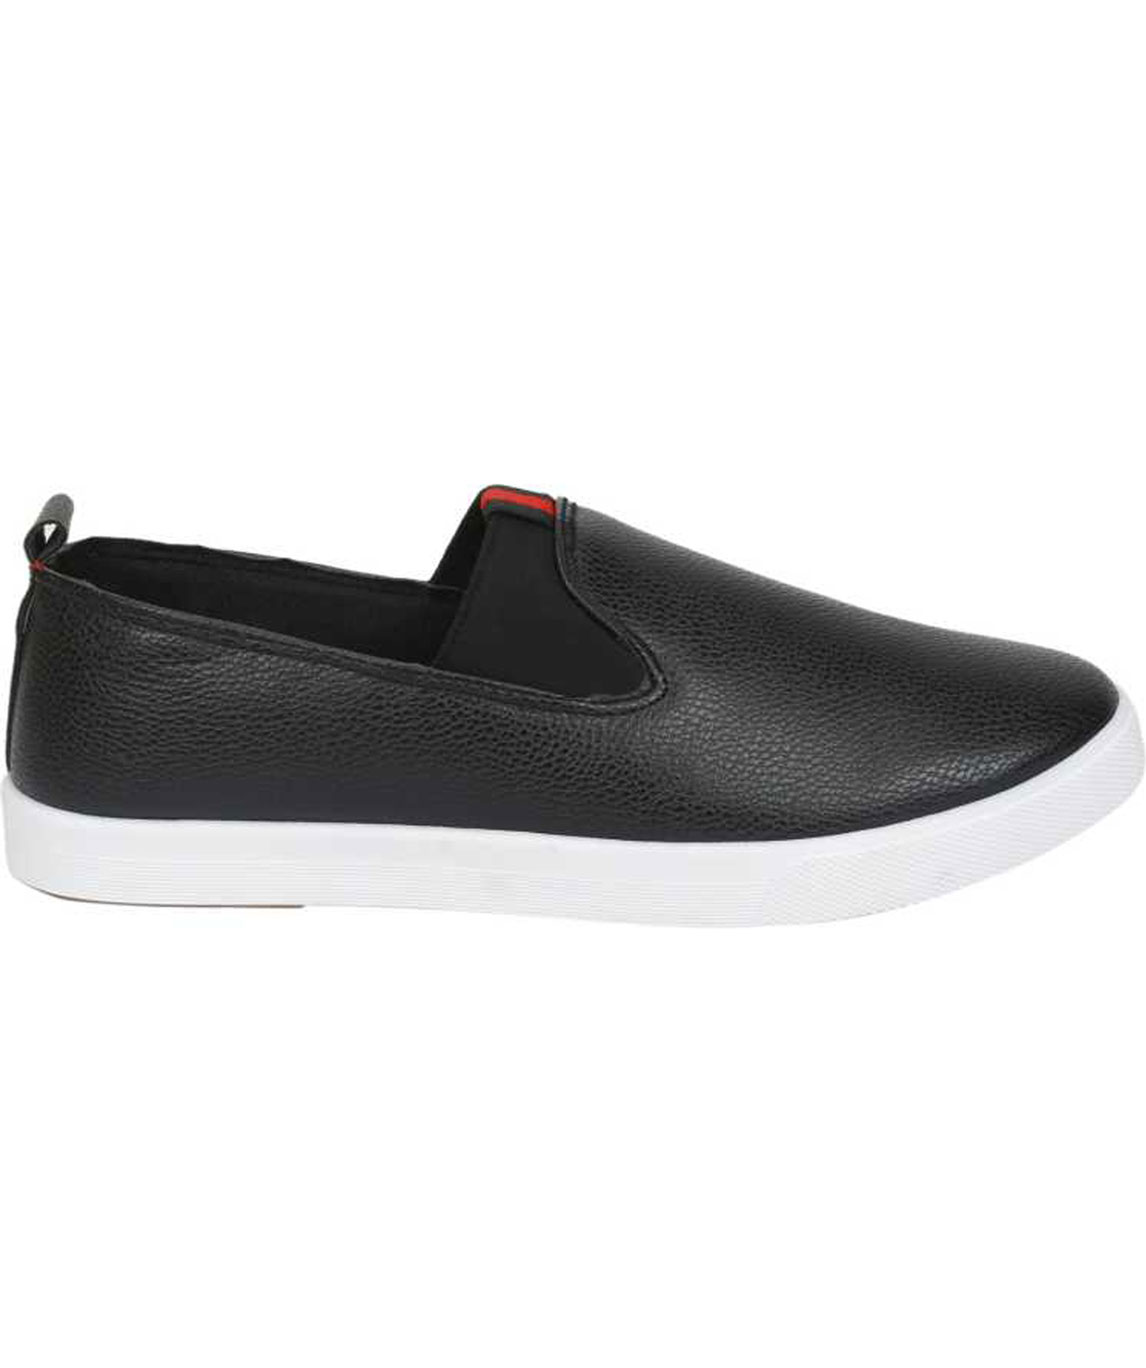 VOSTRO-XAVIER CASUAL SHOES OR SNEAKERS FOR MEN/BOYS(BLACK)